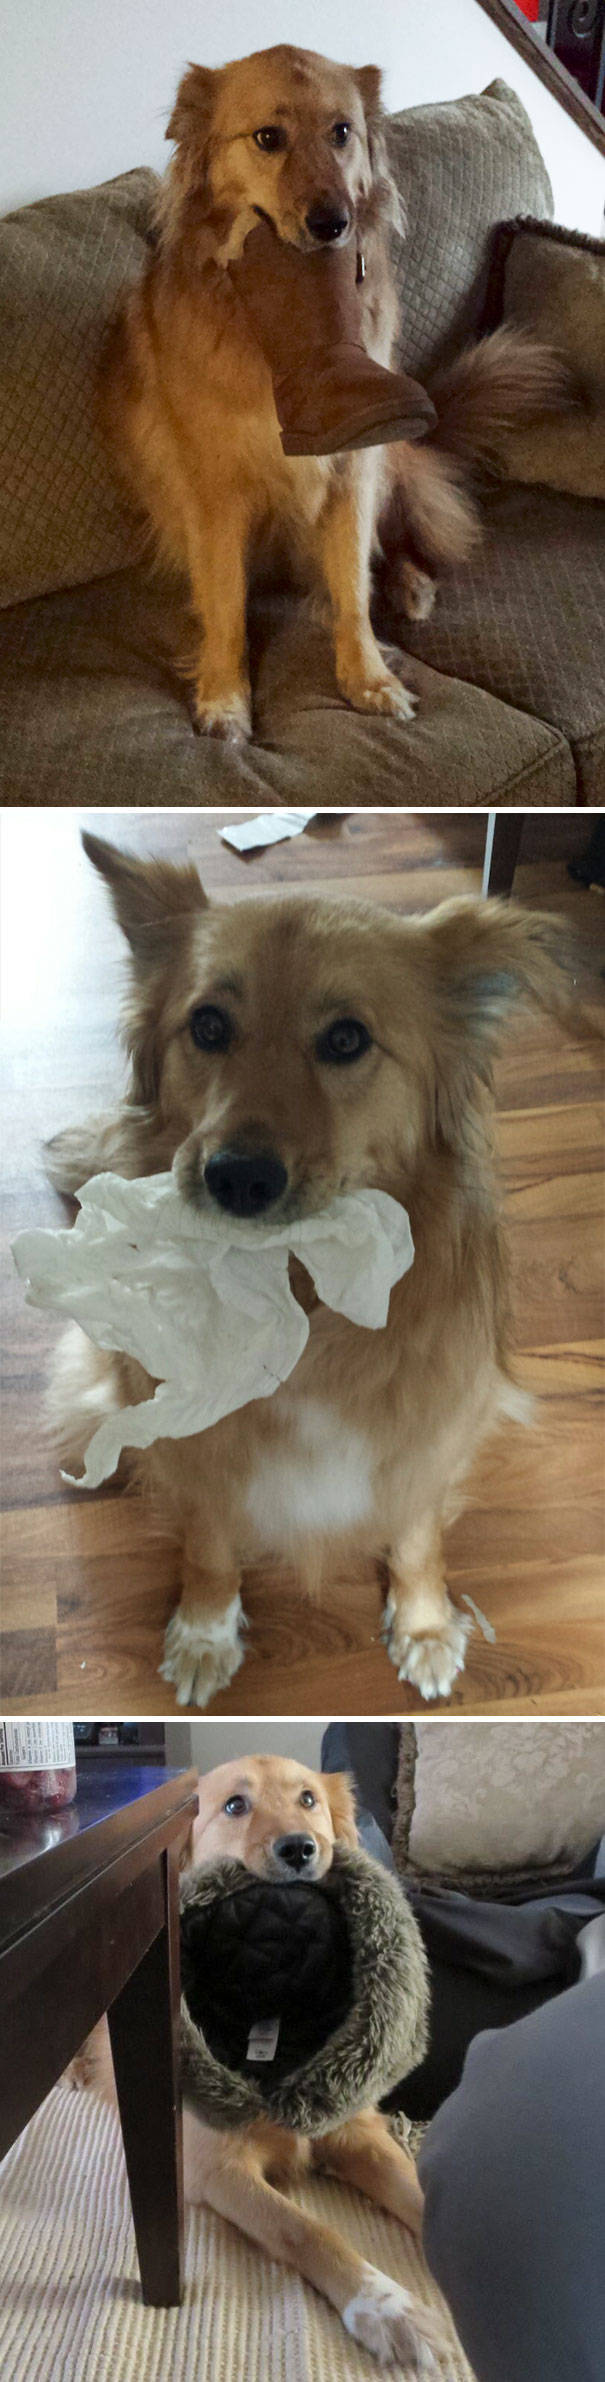 Pets Express Their Love To Humans By Bringing Them Gifts (39 pics)